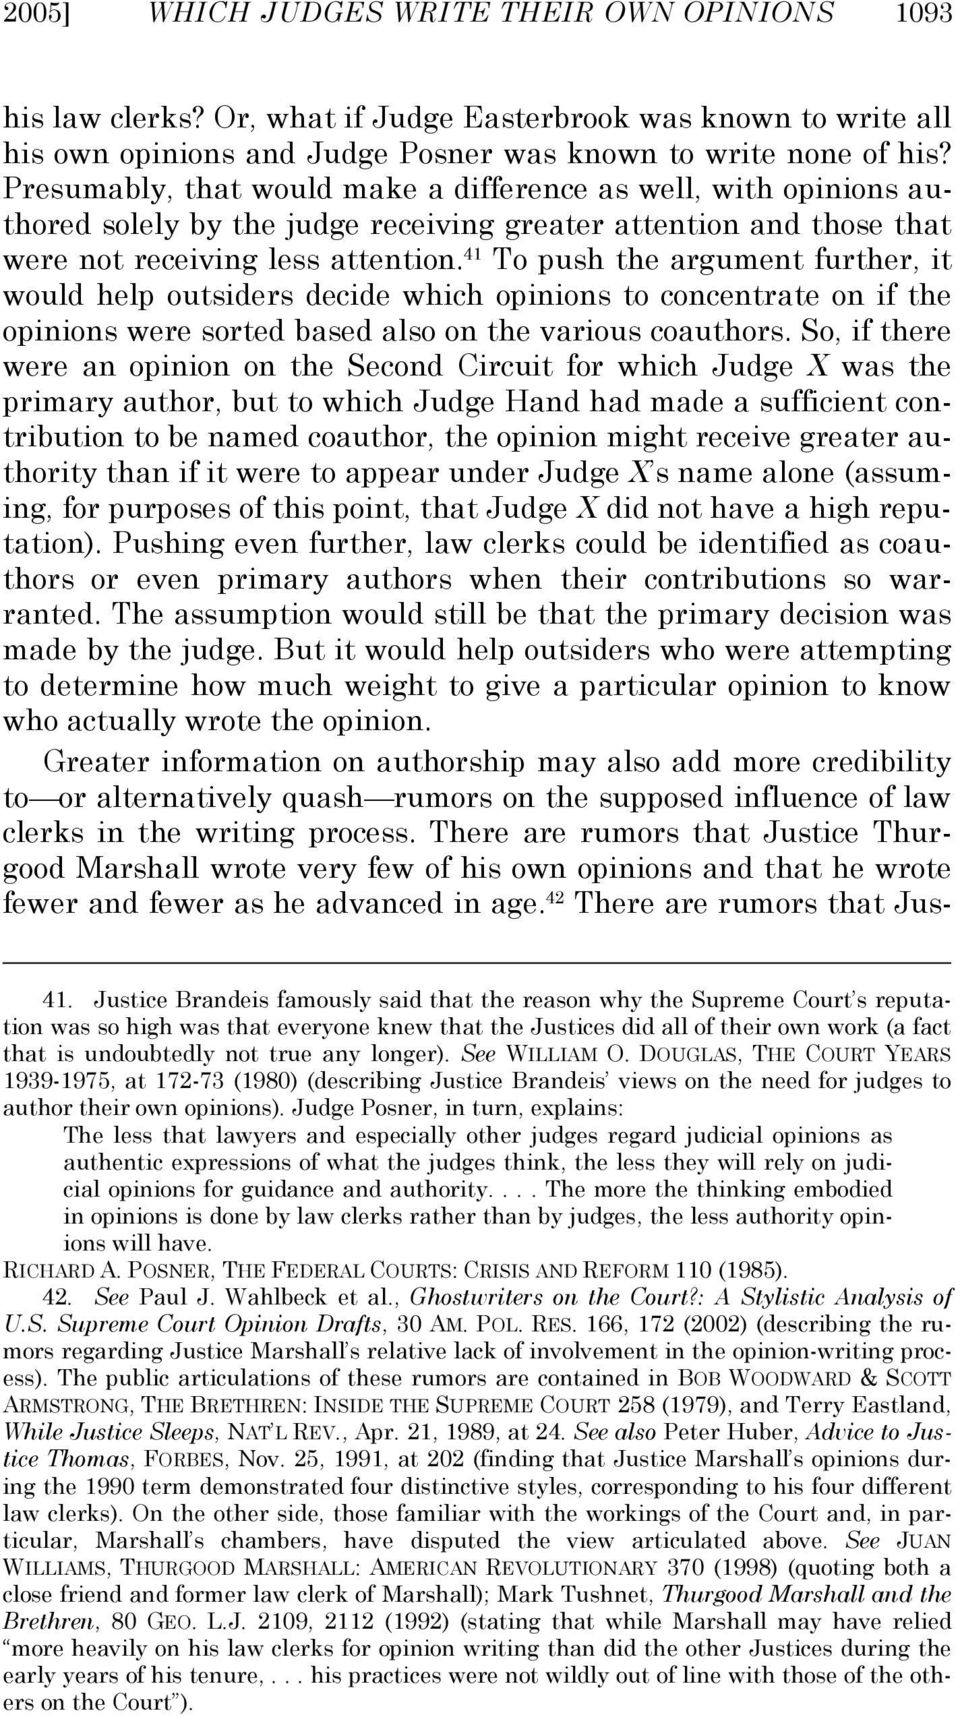 41 To push the argument further, it would help outsiders decide which opinions to concentrate on if the opinions were sorted based also on the various coauthors.